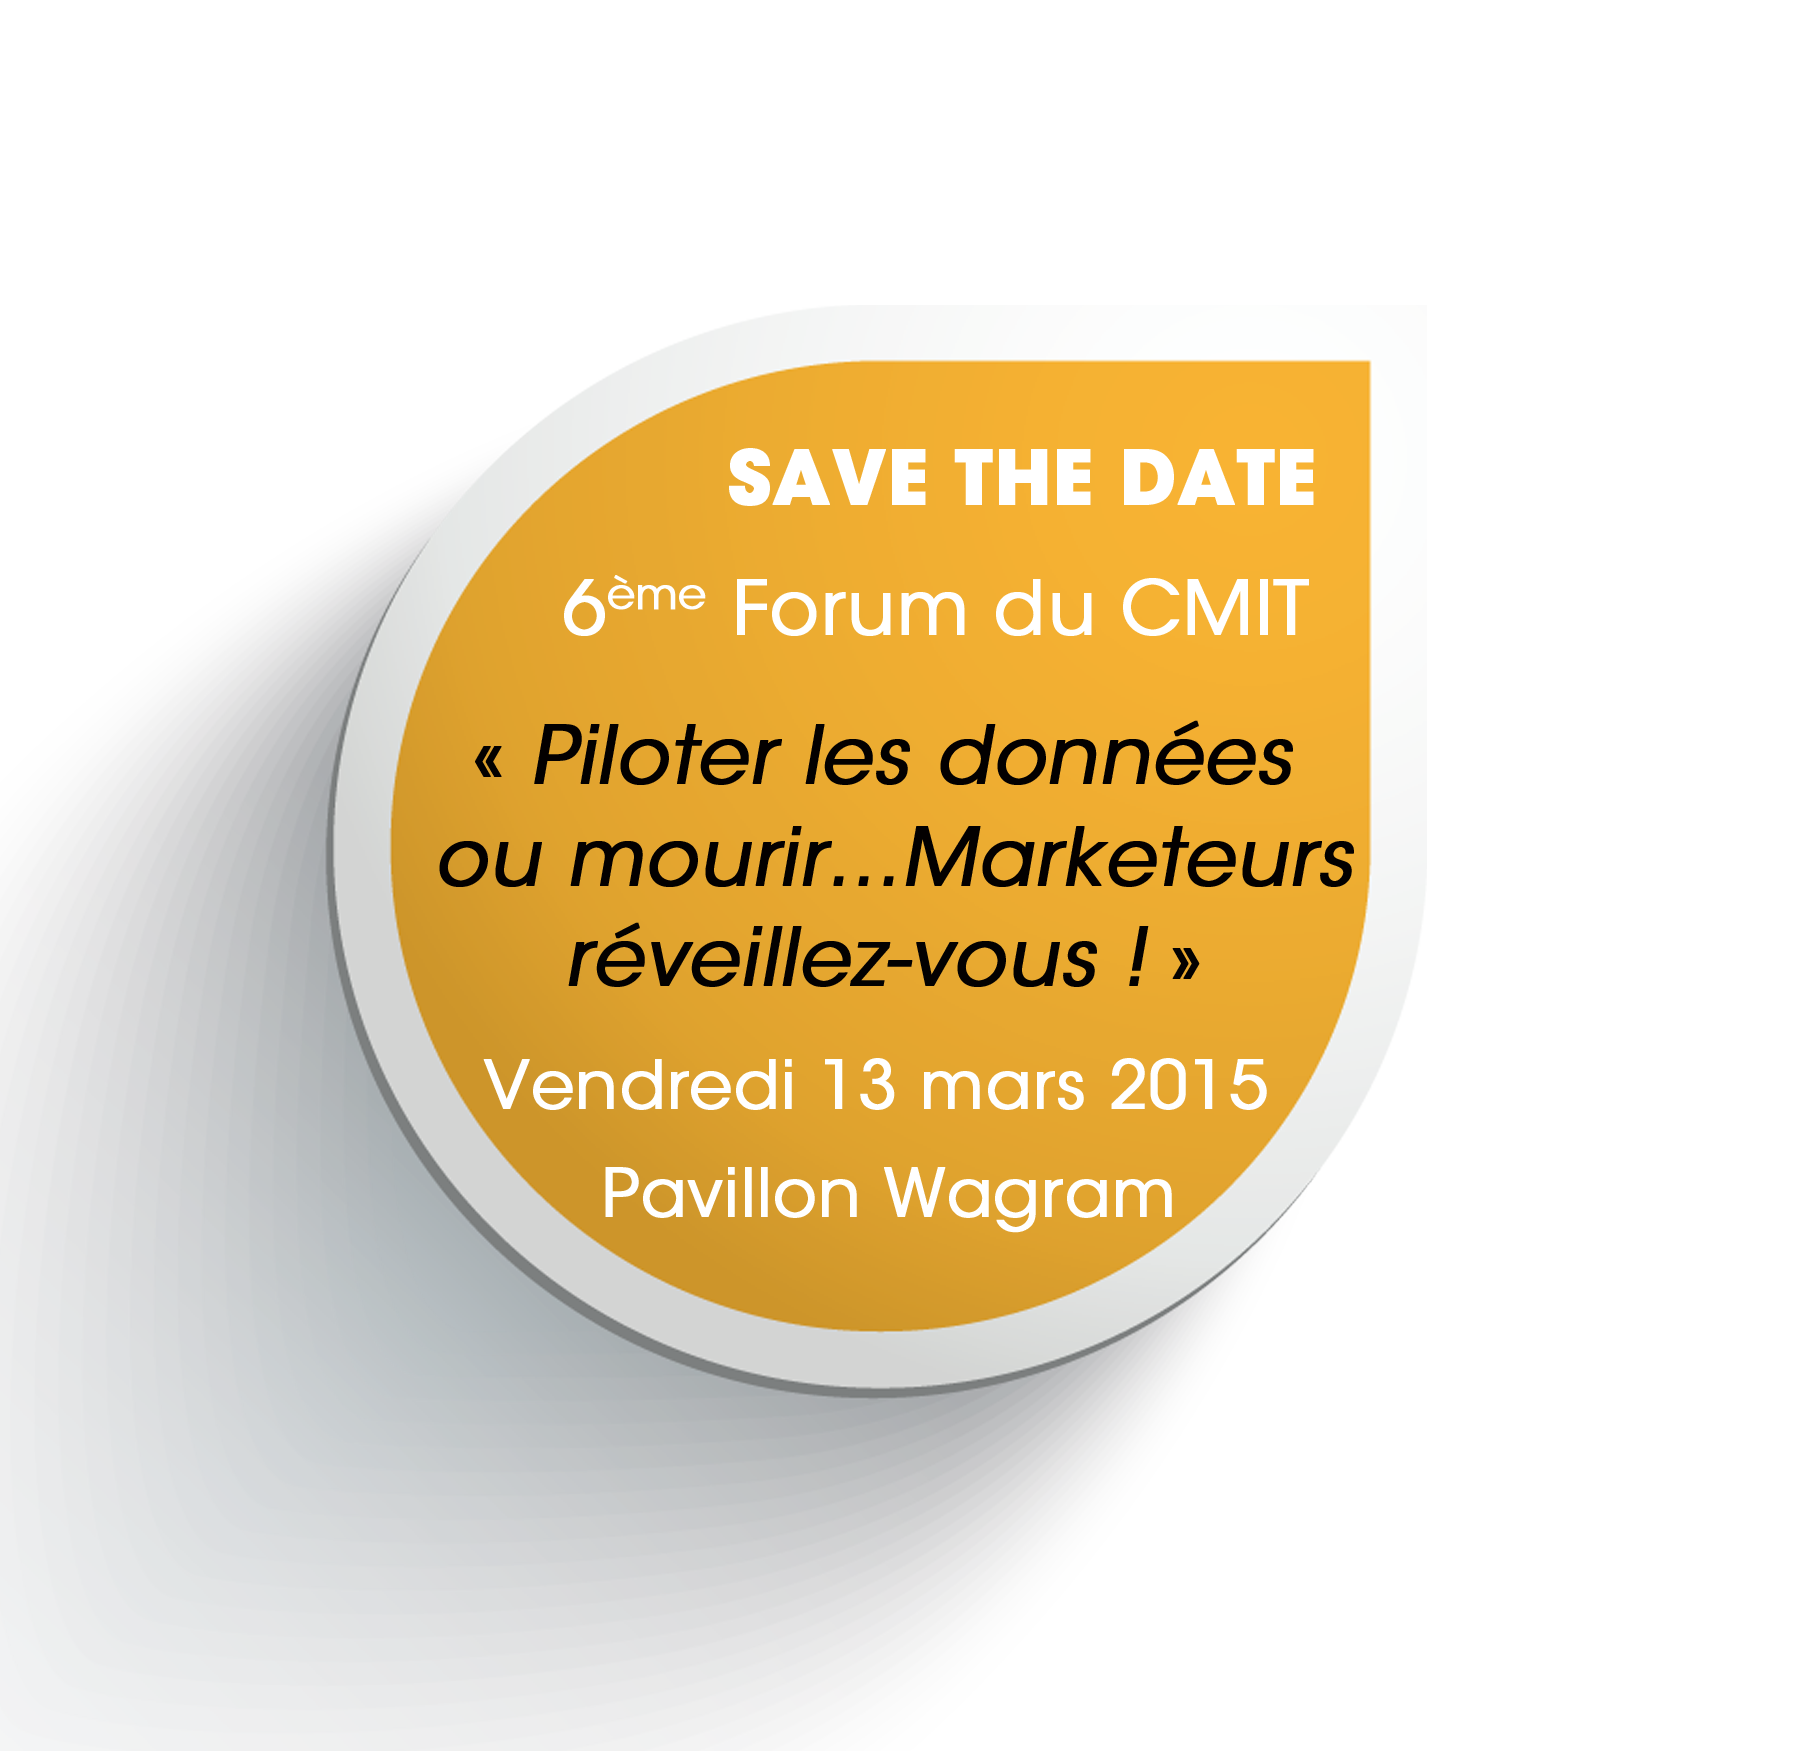 CMIT | 6e édition save the date